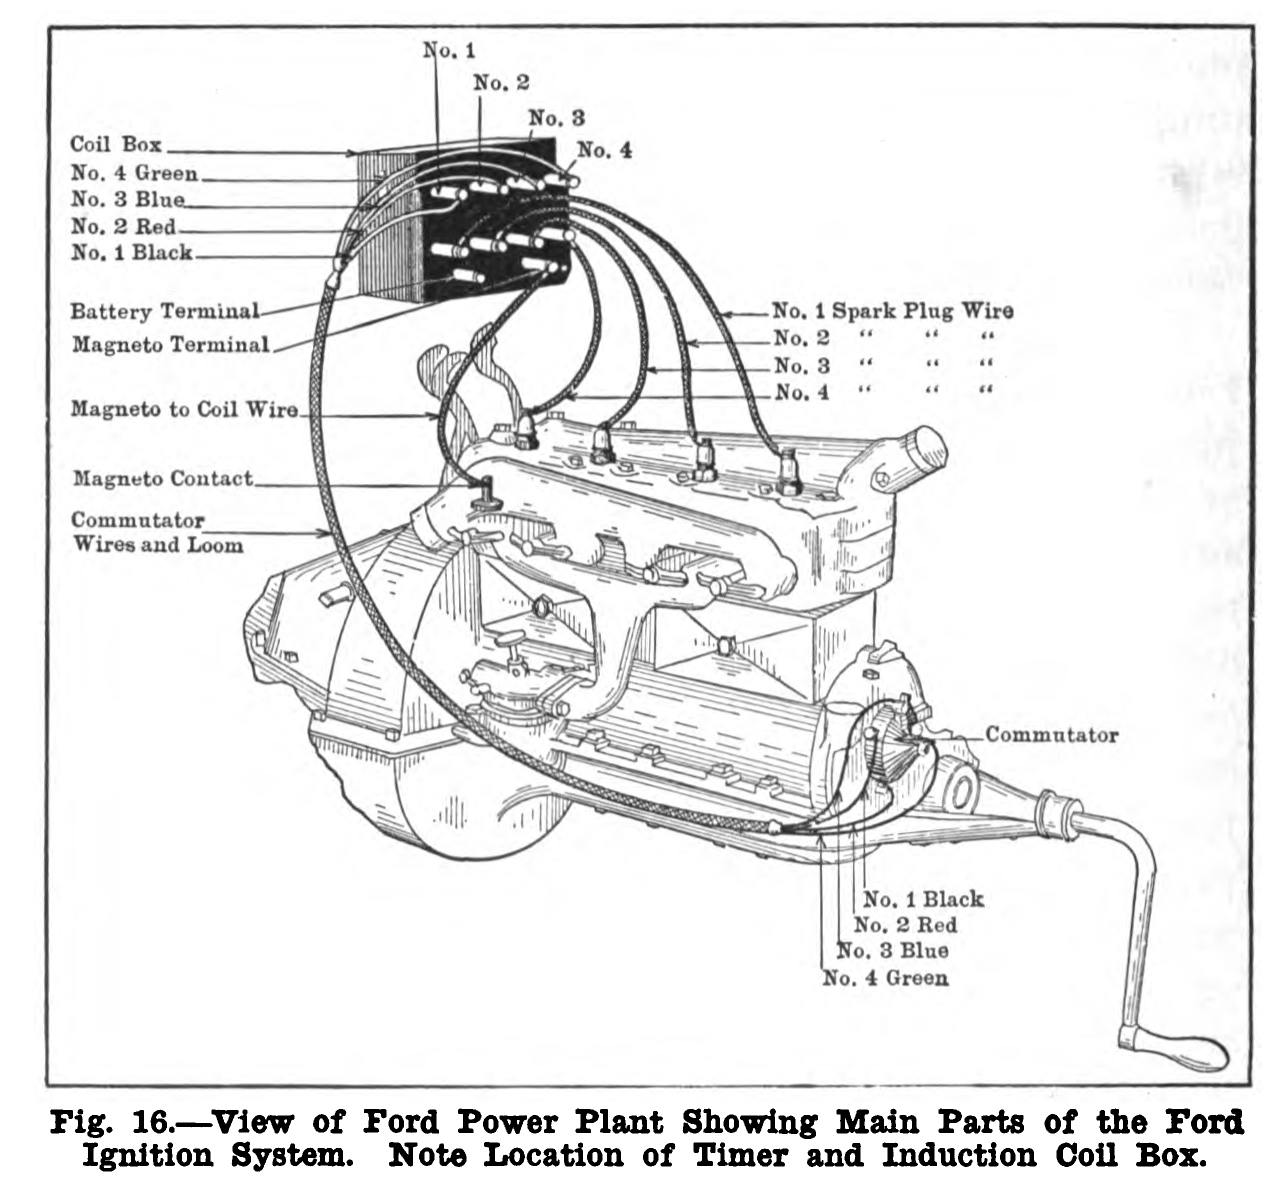 1917 Model T Ford Car Figure 16 Pinterest Ignition System Wiring Diagram